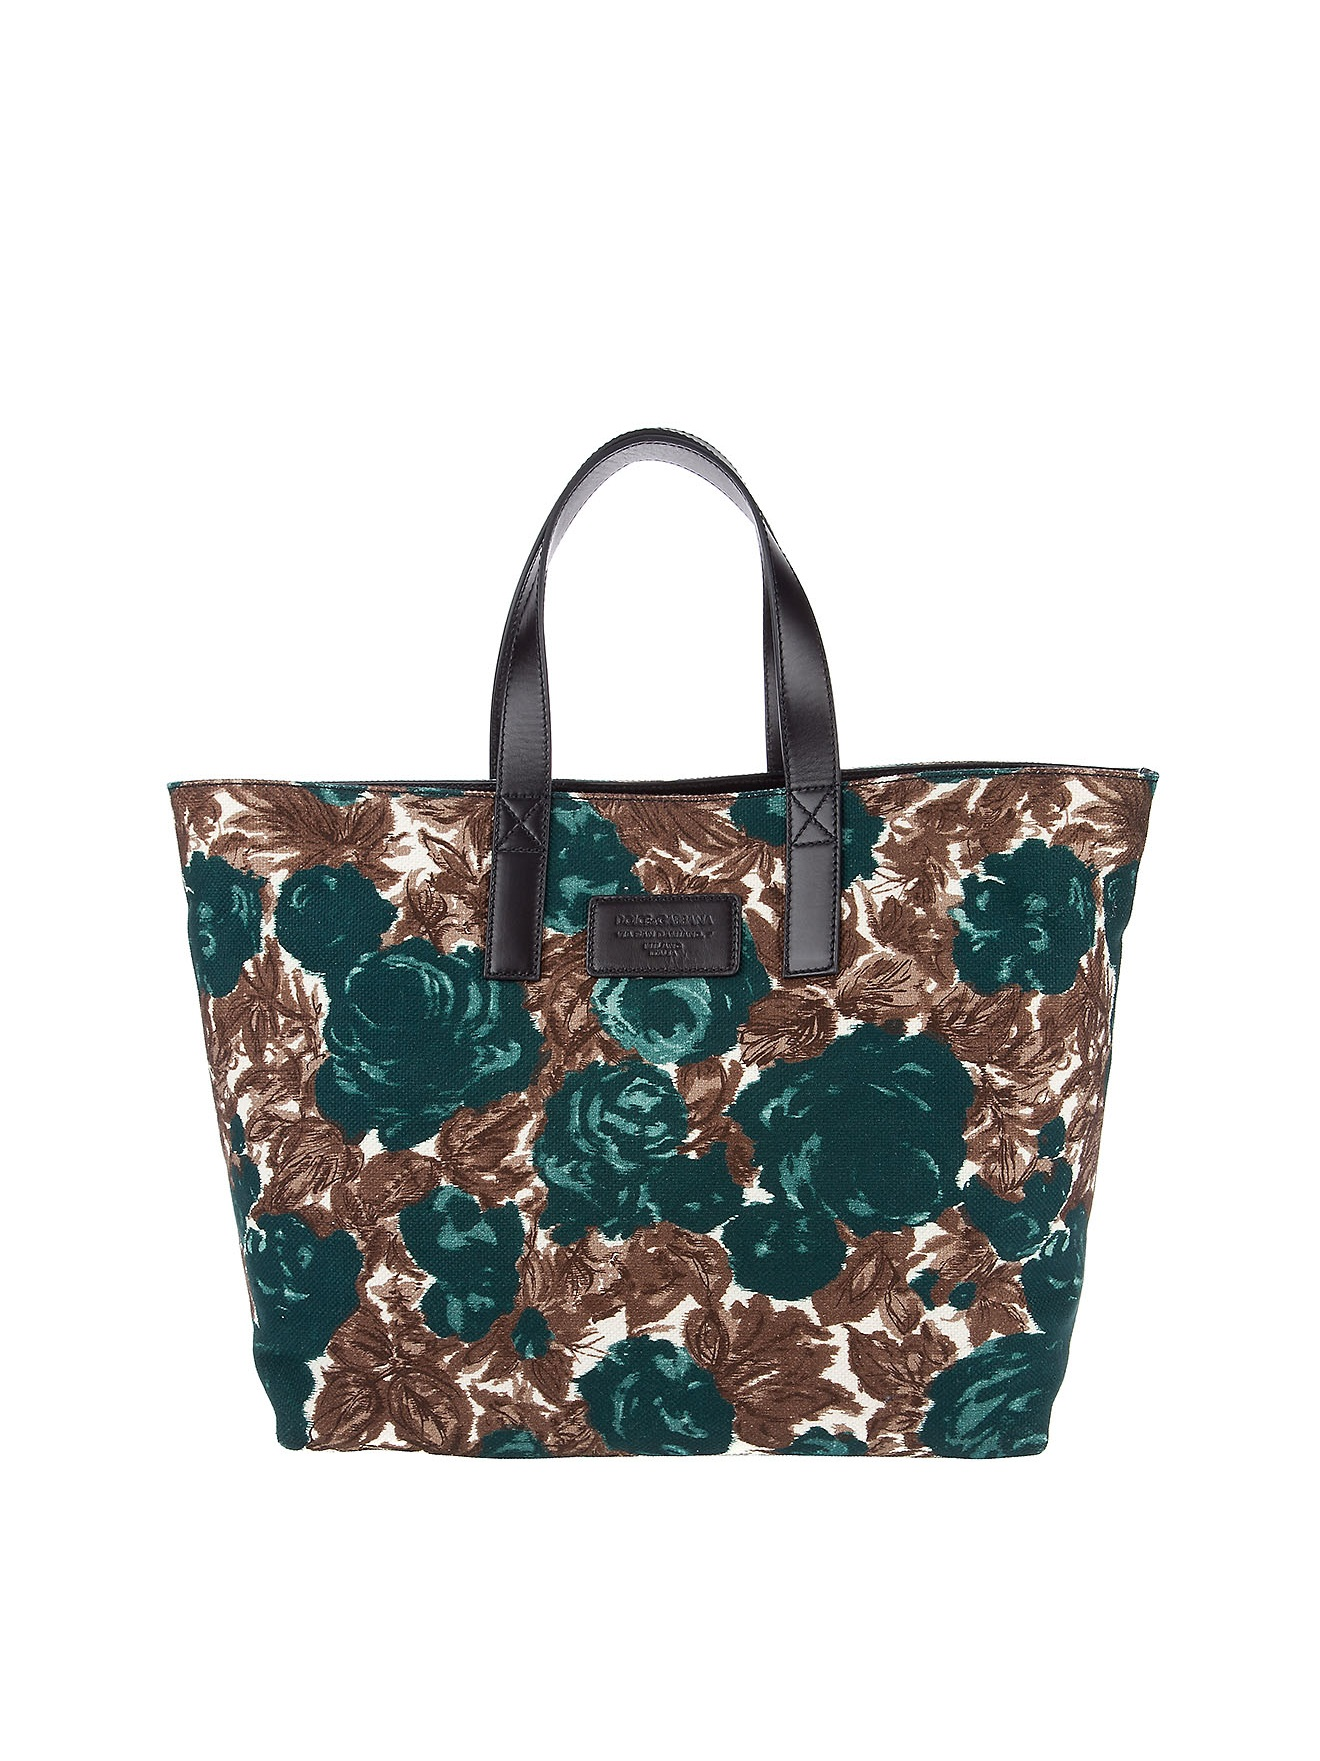 dolce gabbana floral tote bag in green lyst